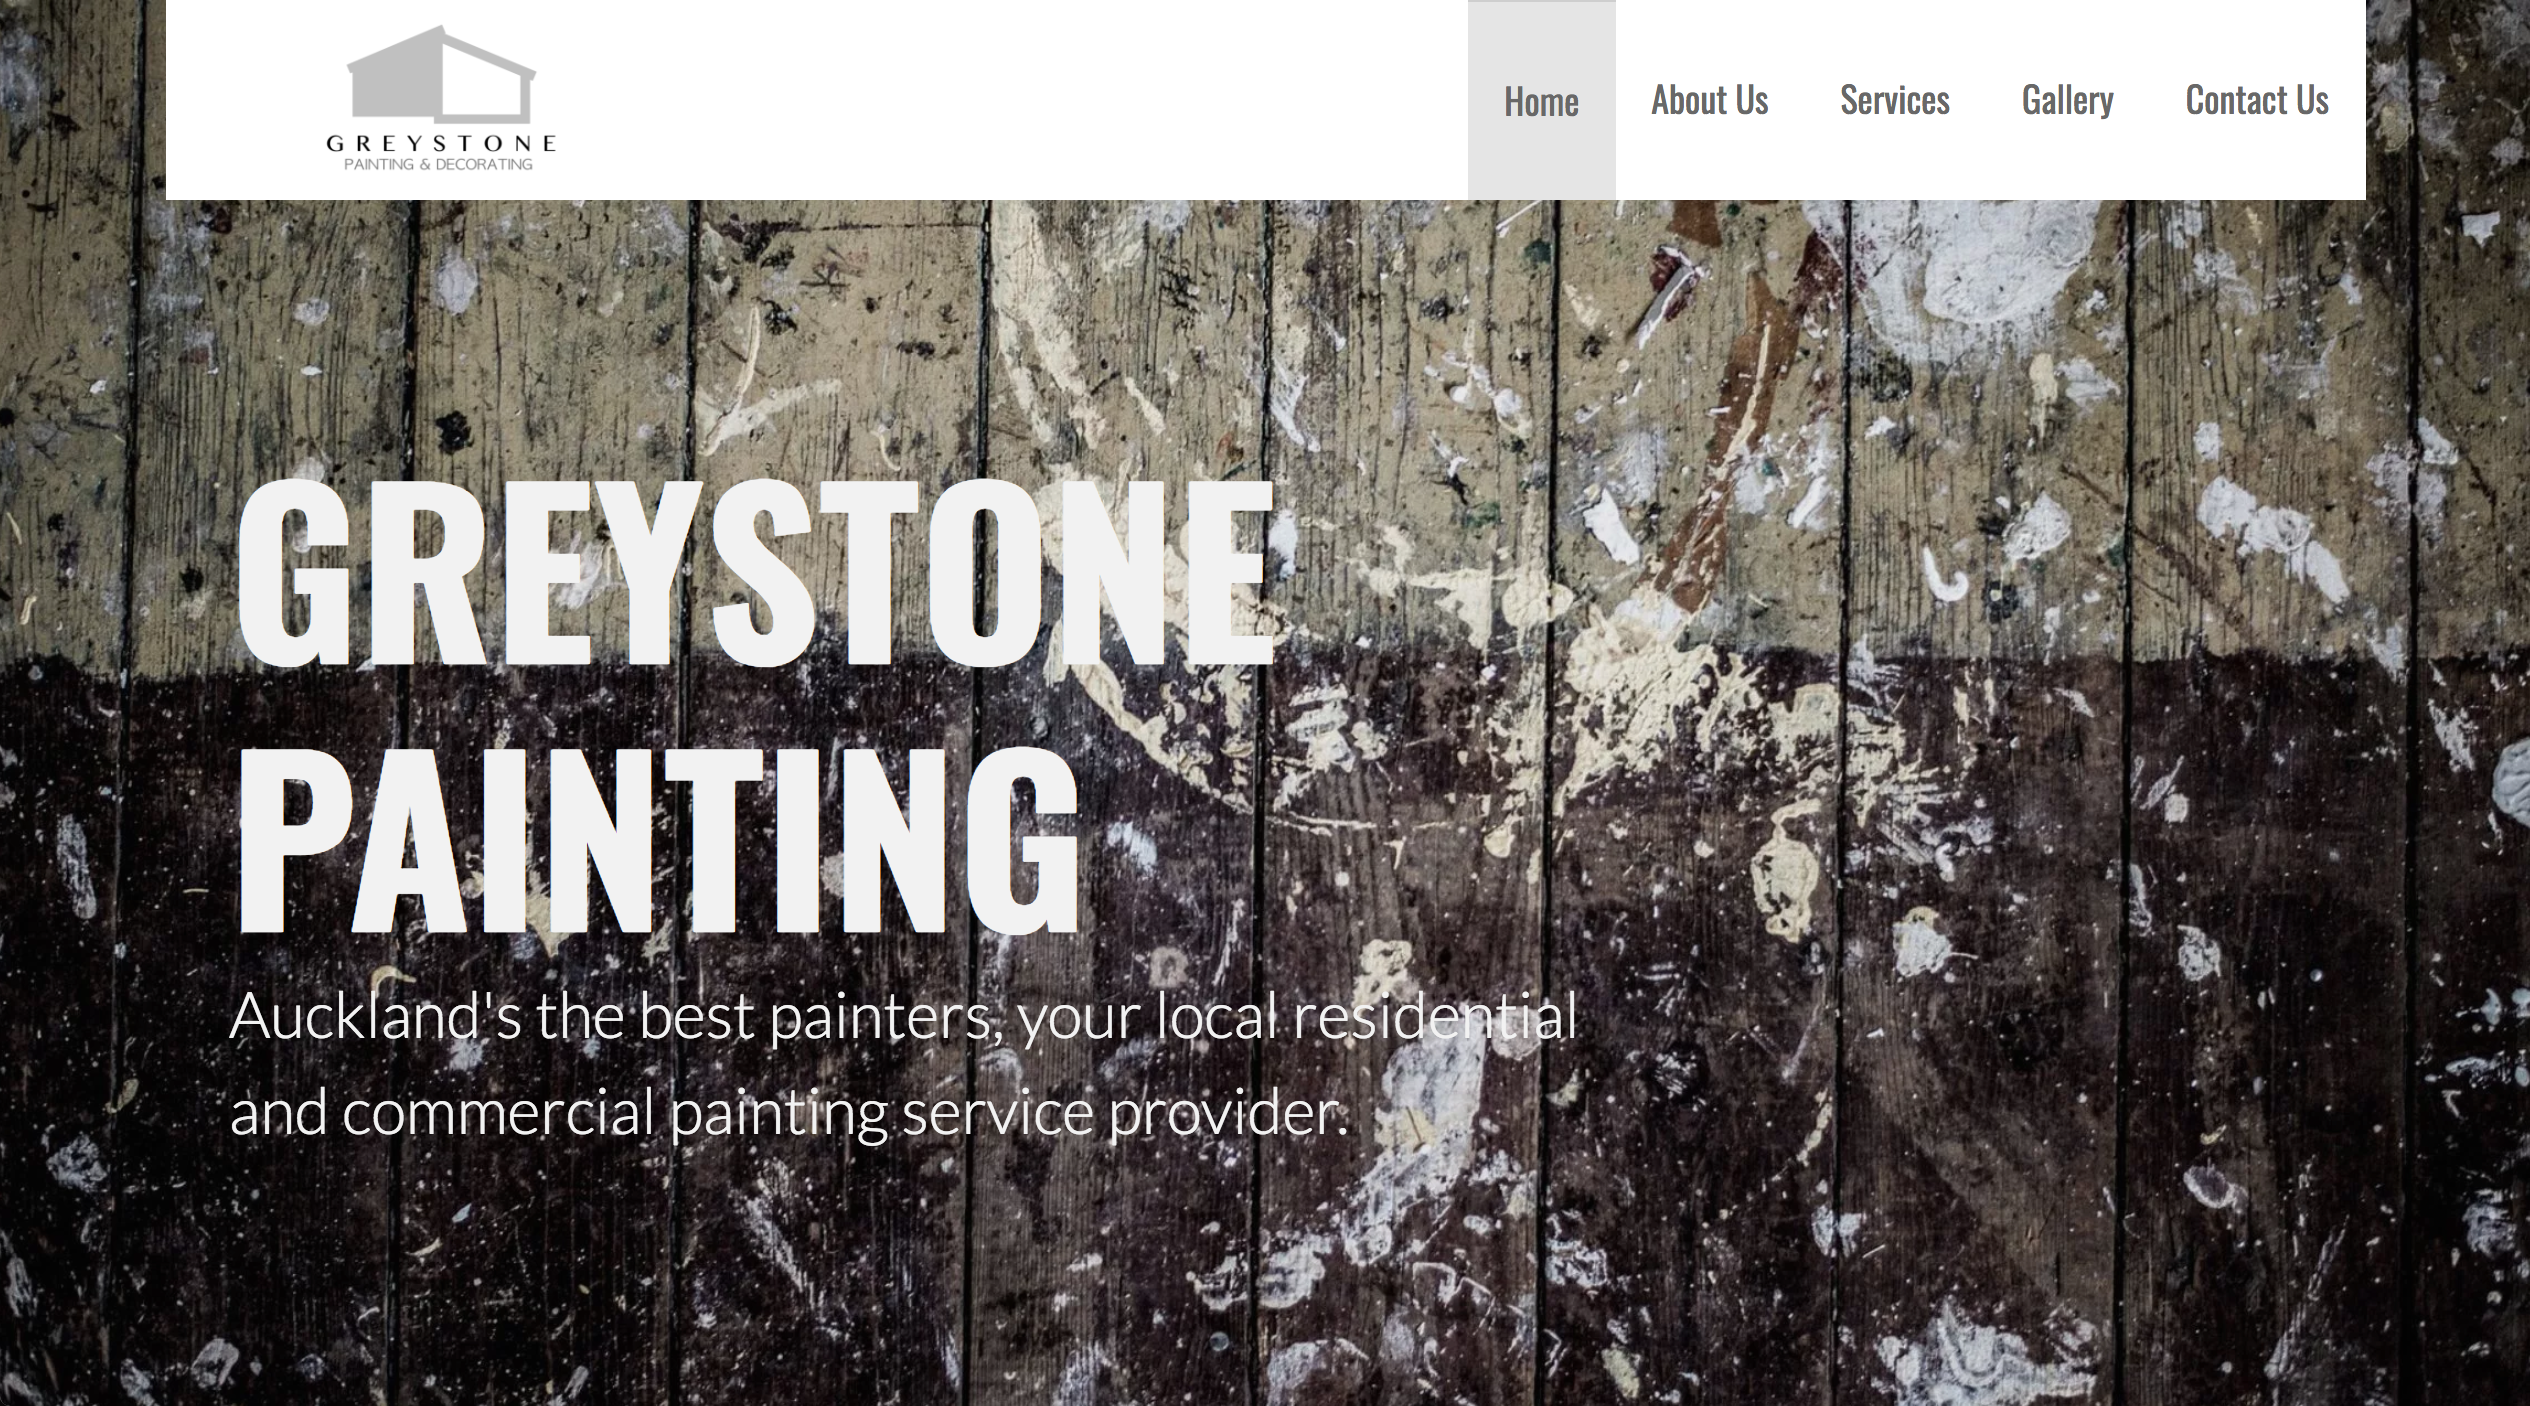 Greystone paining website